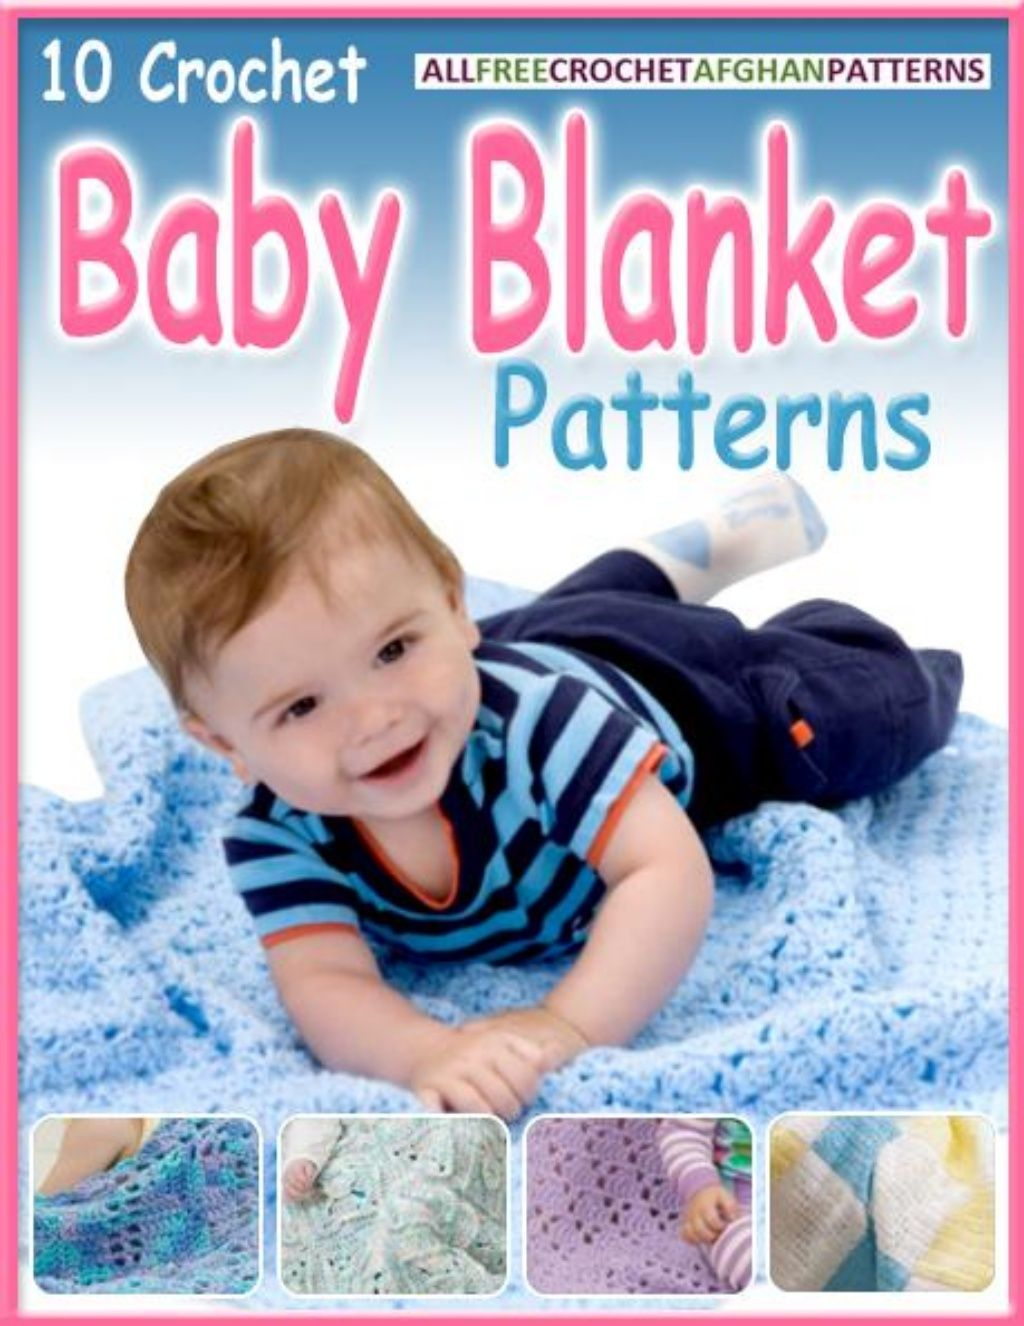 10 crochet baby blanket patterns e book by LUISA BLANES via slideshare